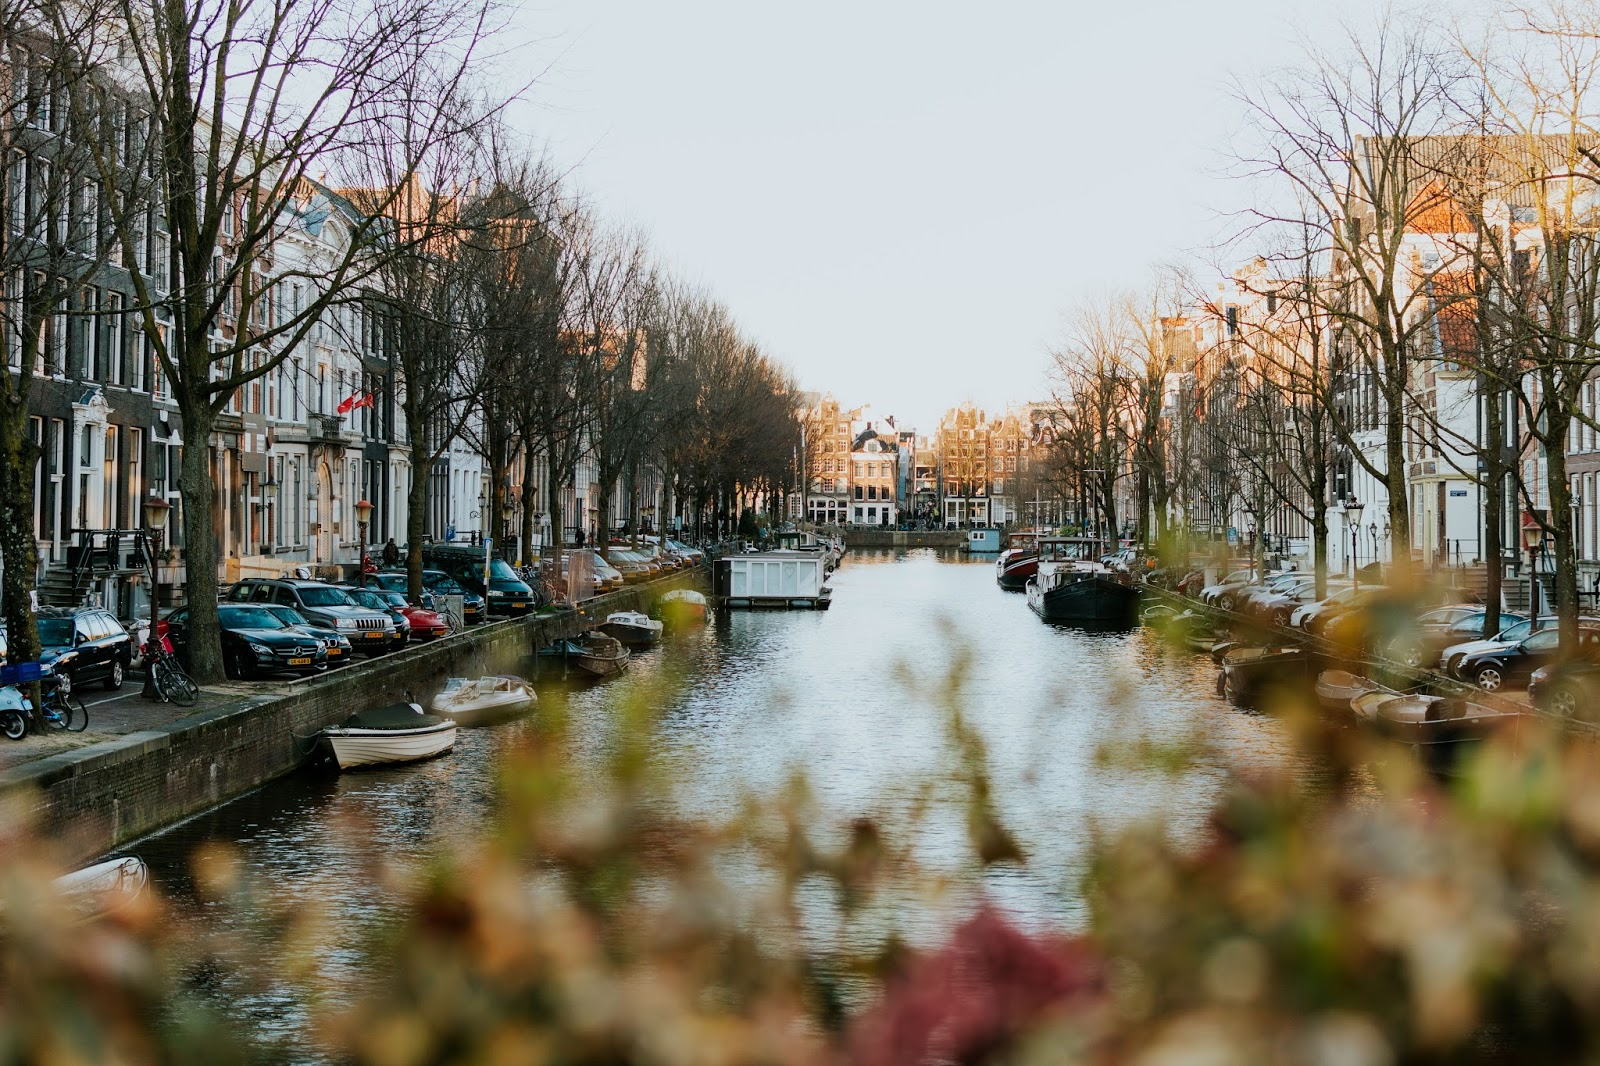 View on the canals by moonshinefaerie